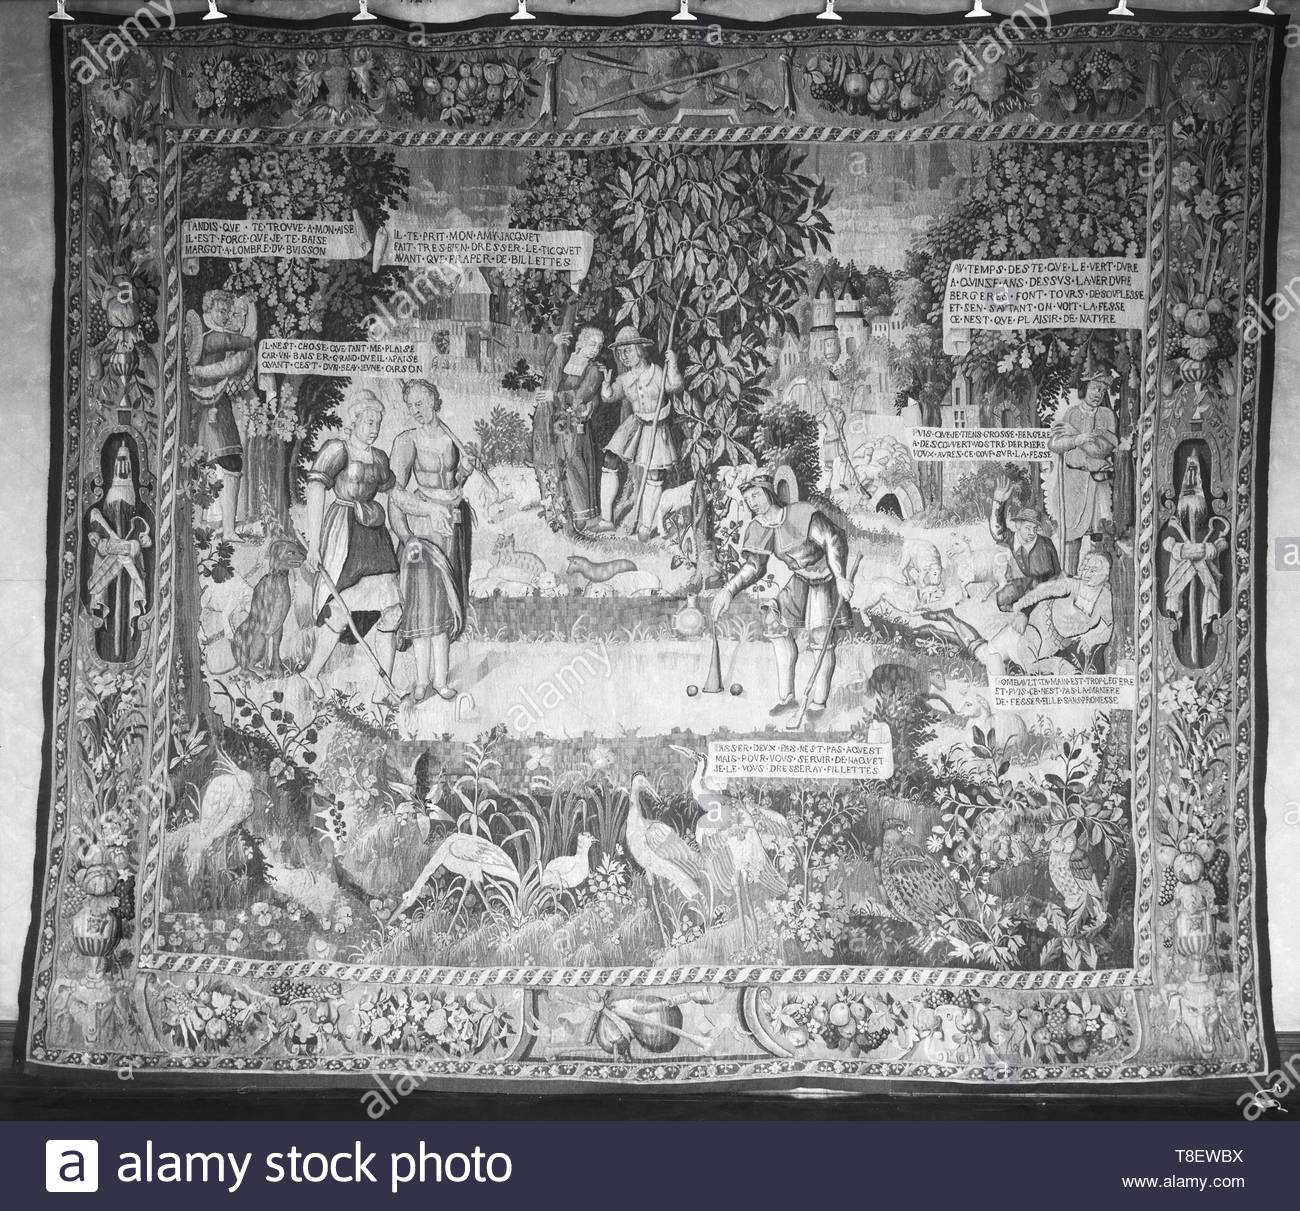 Leclerc, Jean (French, 1587-1633) (designed after) [printmaker]-Game of croquet, Image 1 - Stock Image